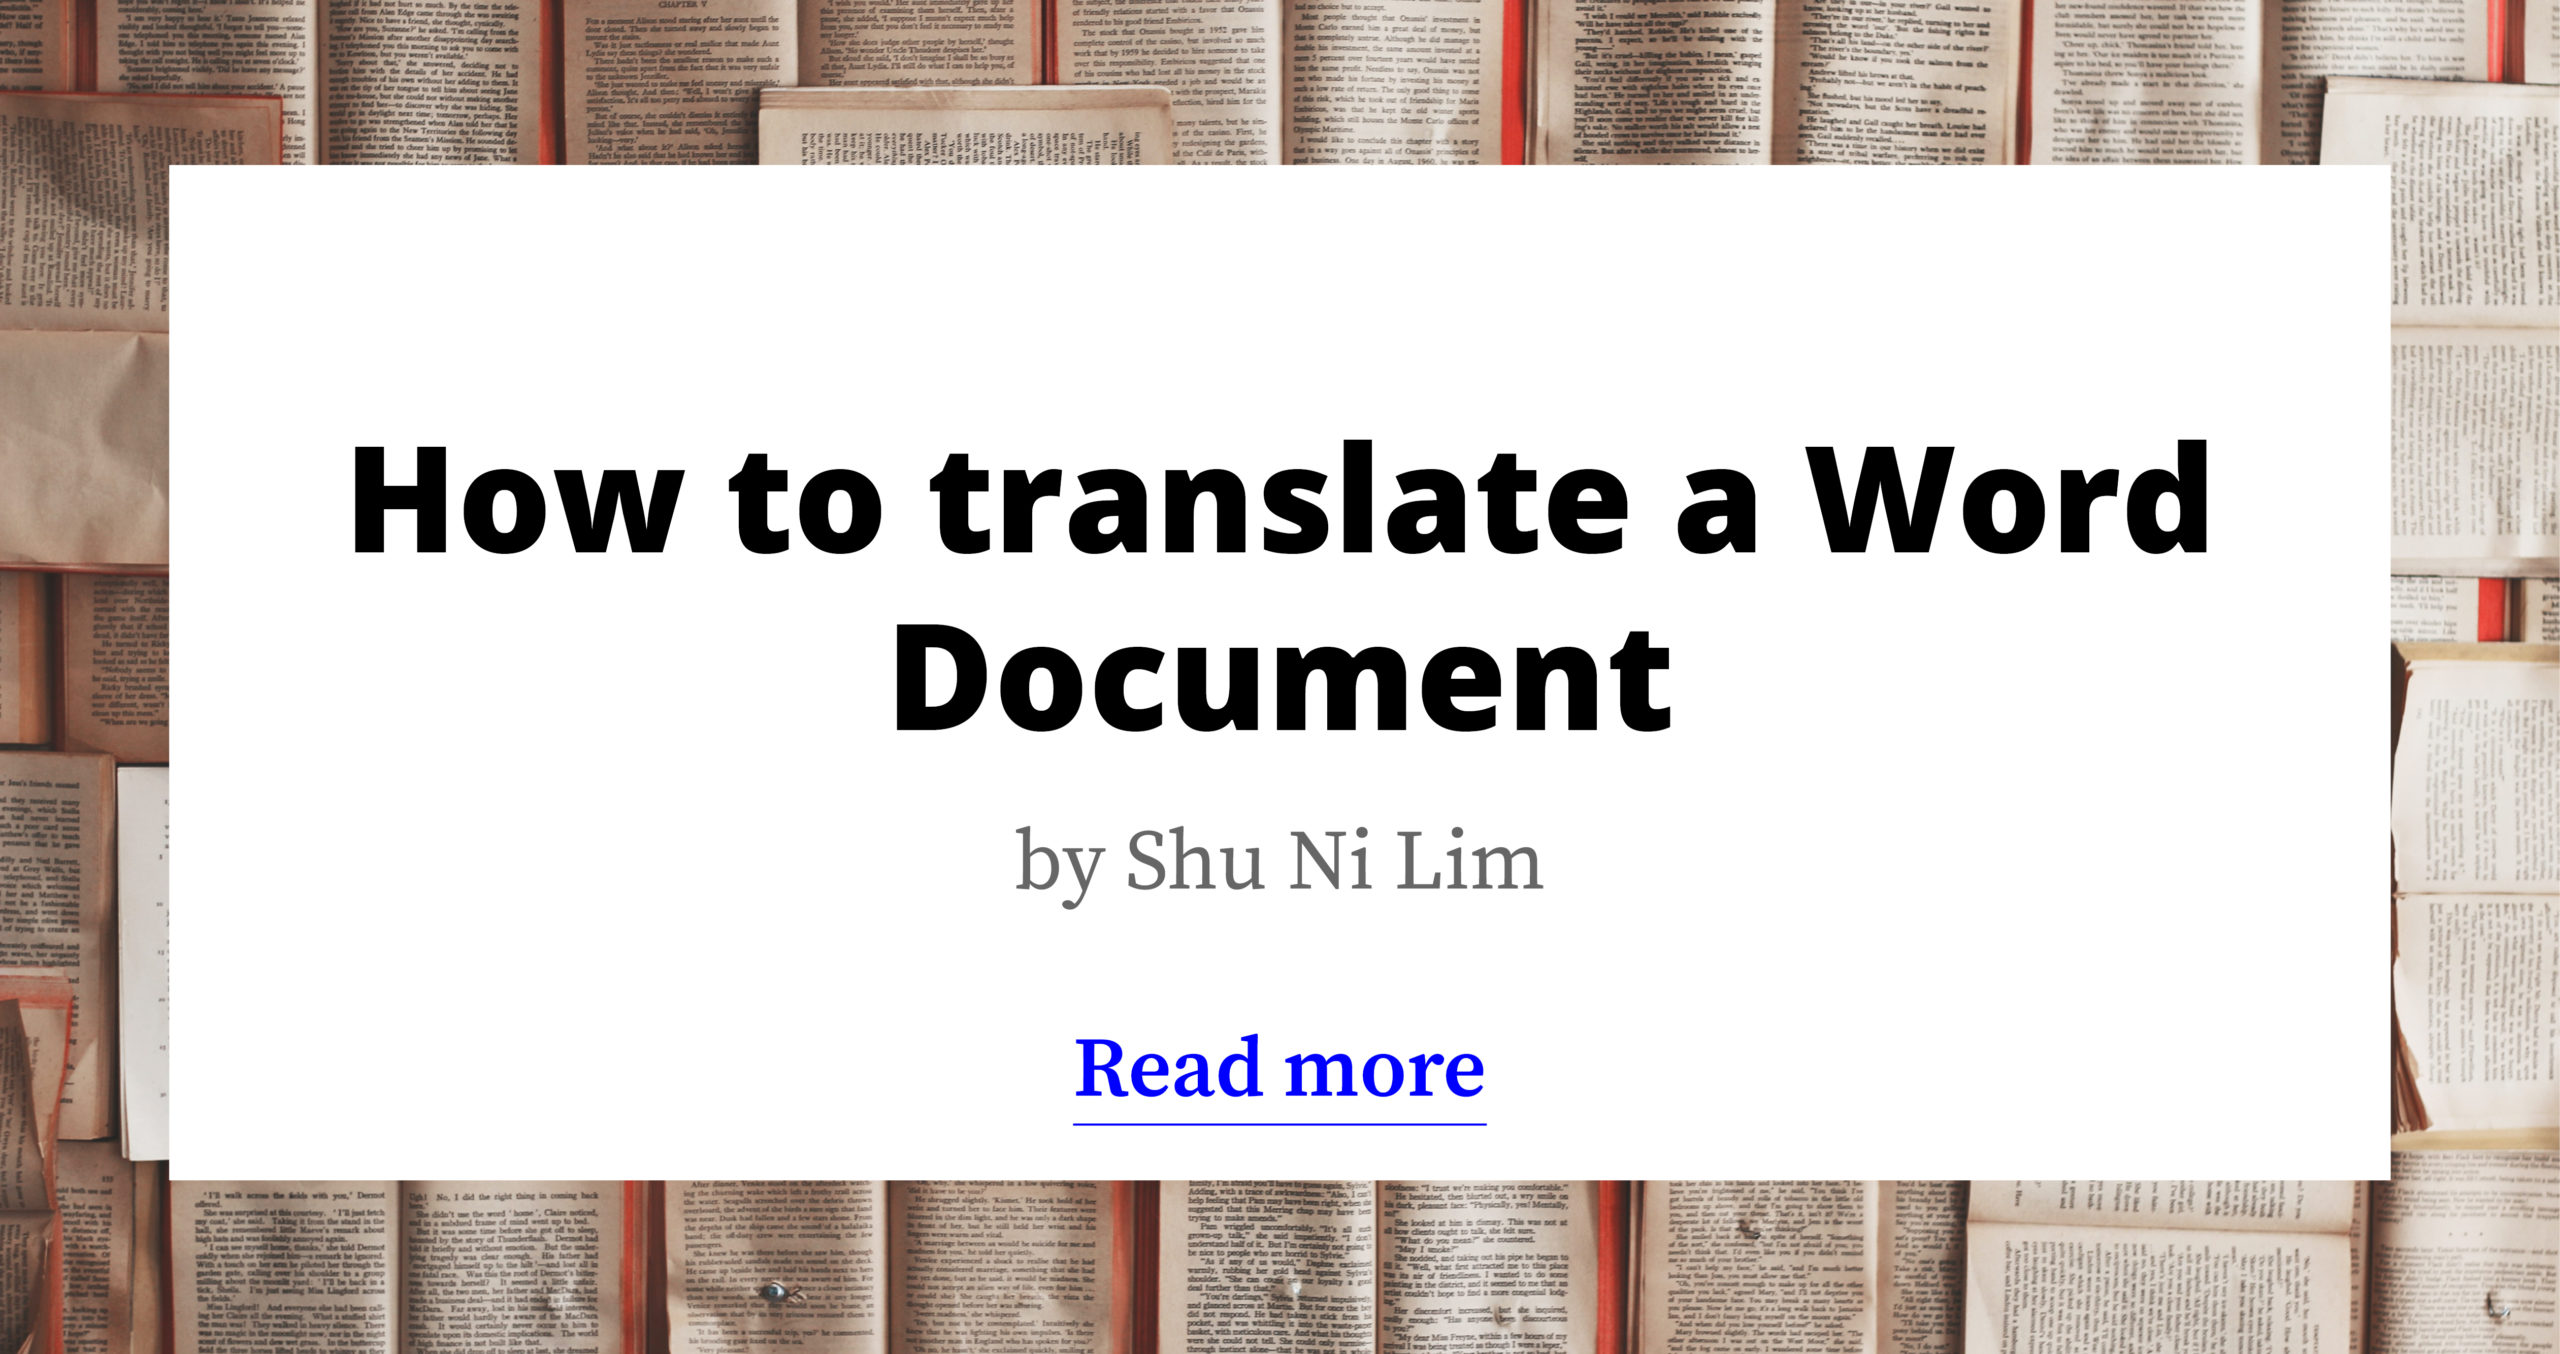 How to Translate a Word Document: 4 Simple Ways